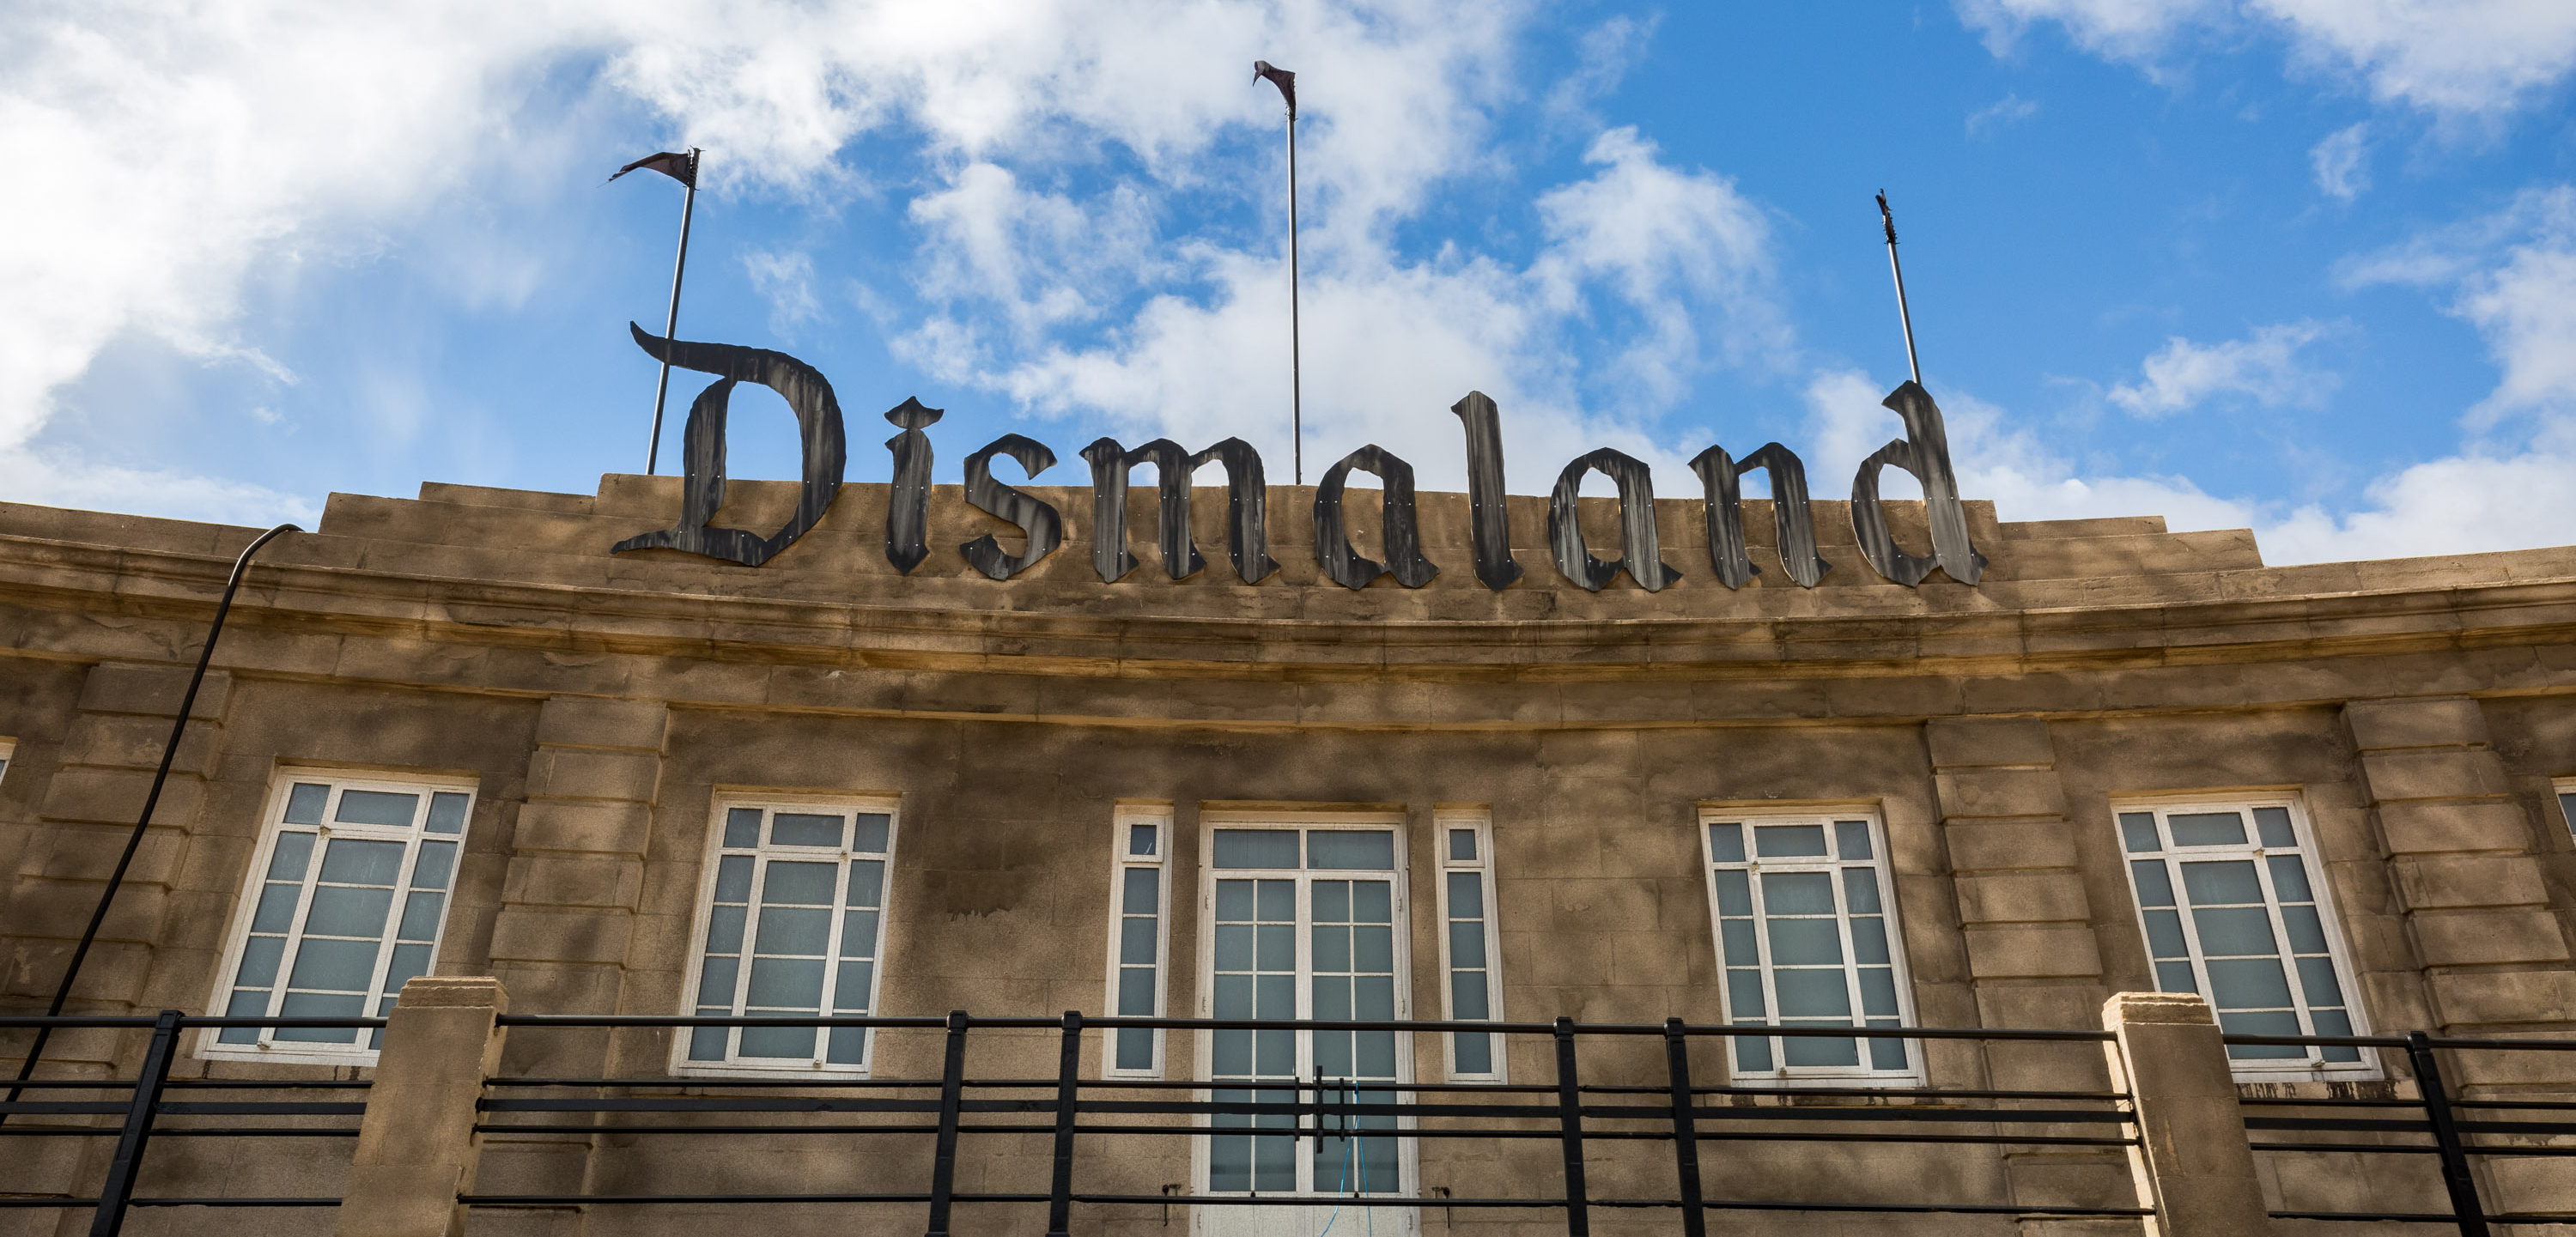 """Dismaland"" was a temporary art installation organized by artist Banksy. A riff on Disneyland, the park was in Weston-super-Mare in Somerset, England. Photo by Guy Corbishley/Demotix/Corbis"